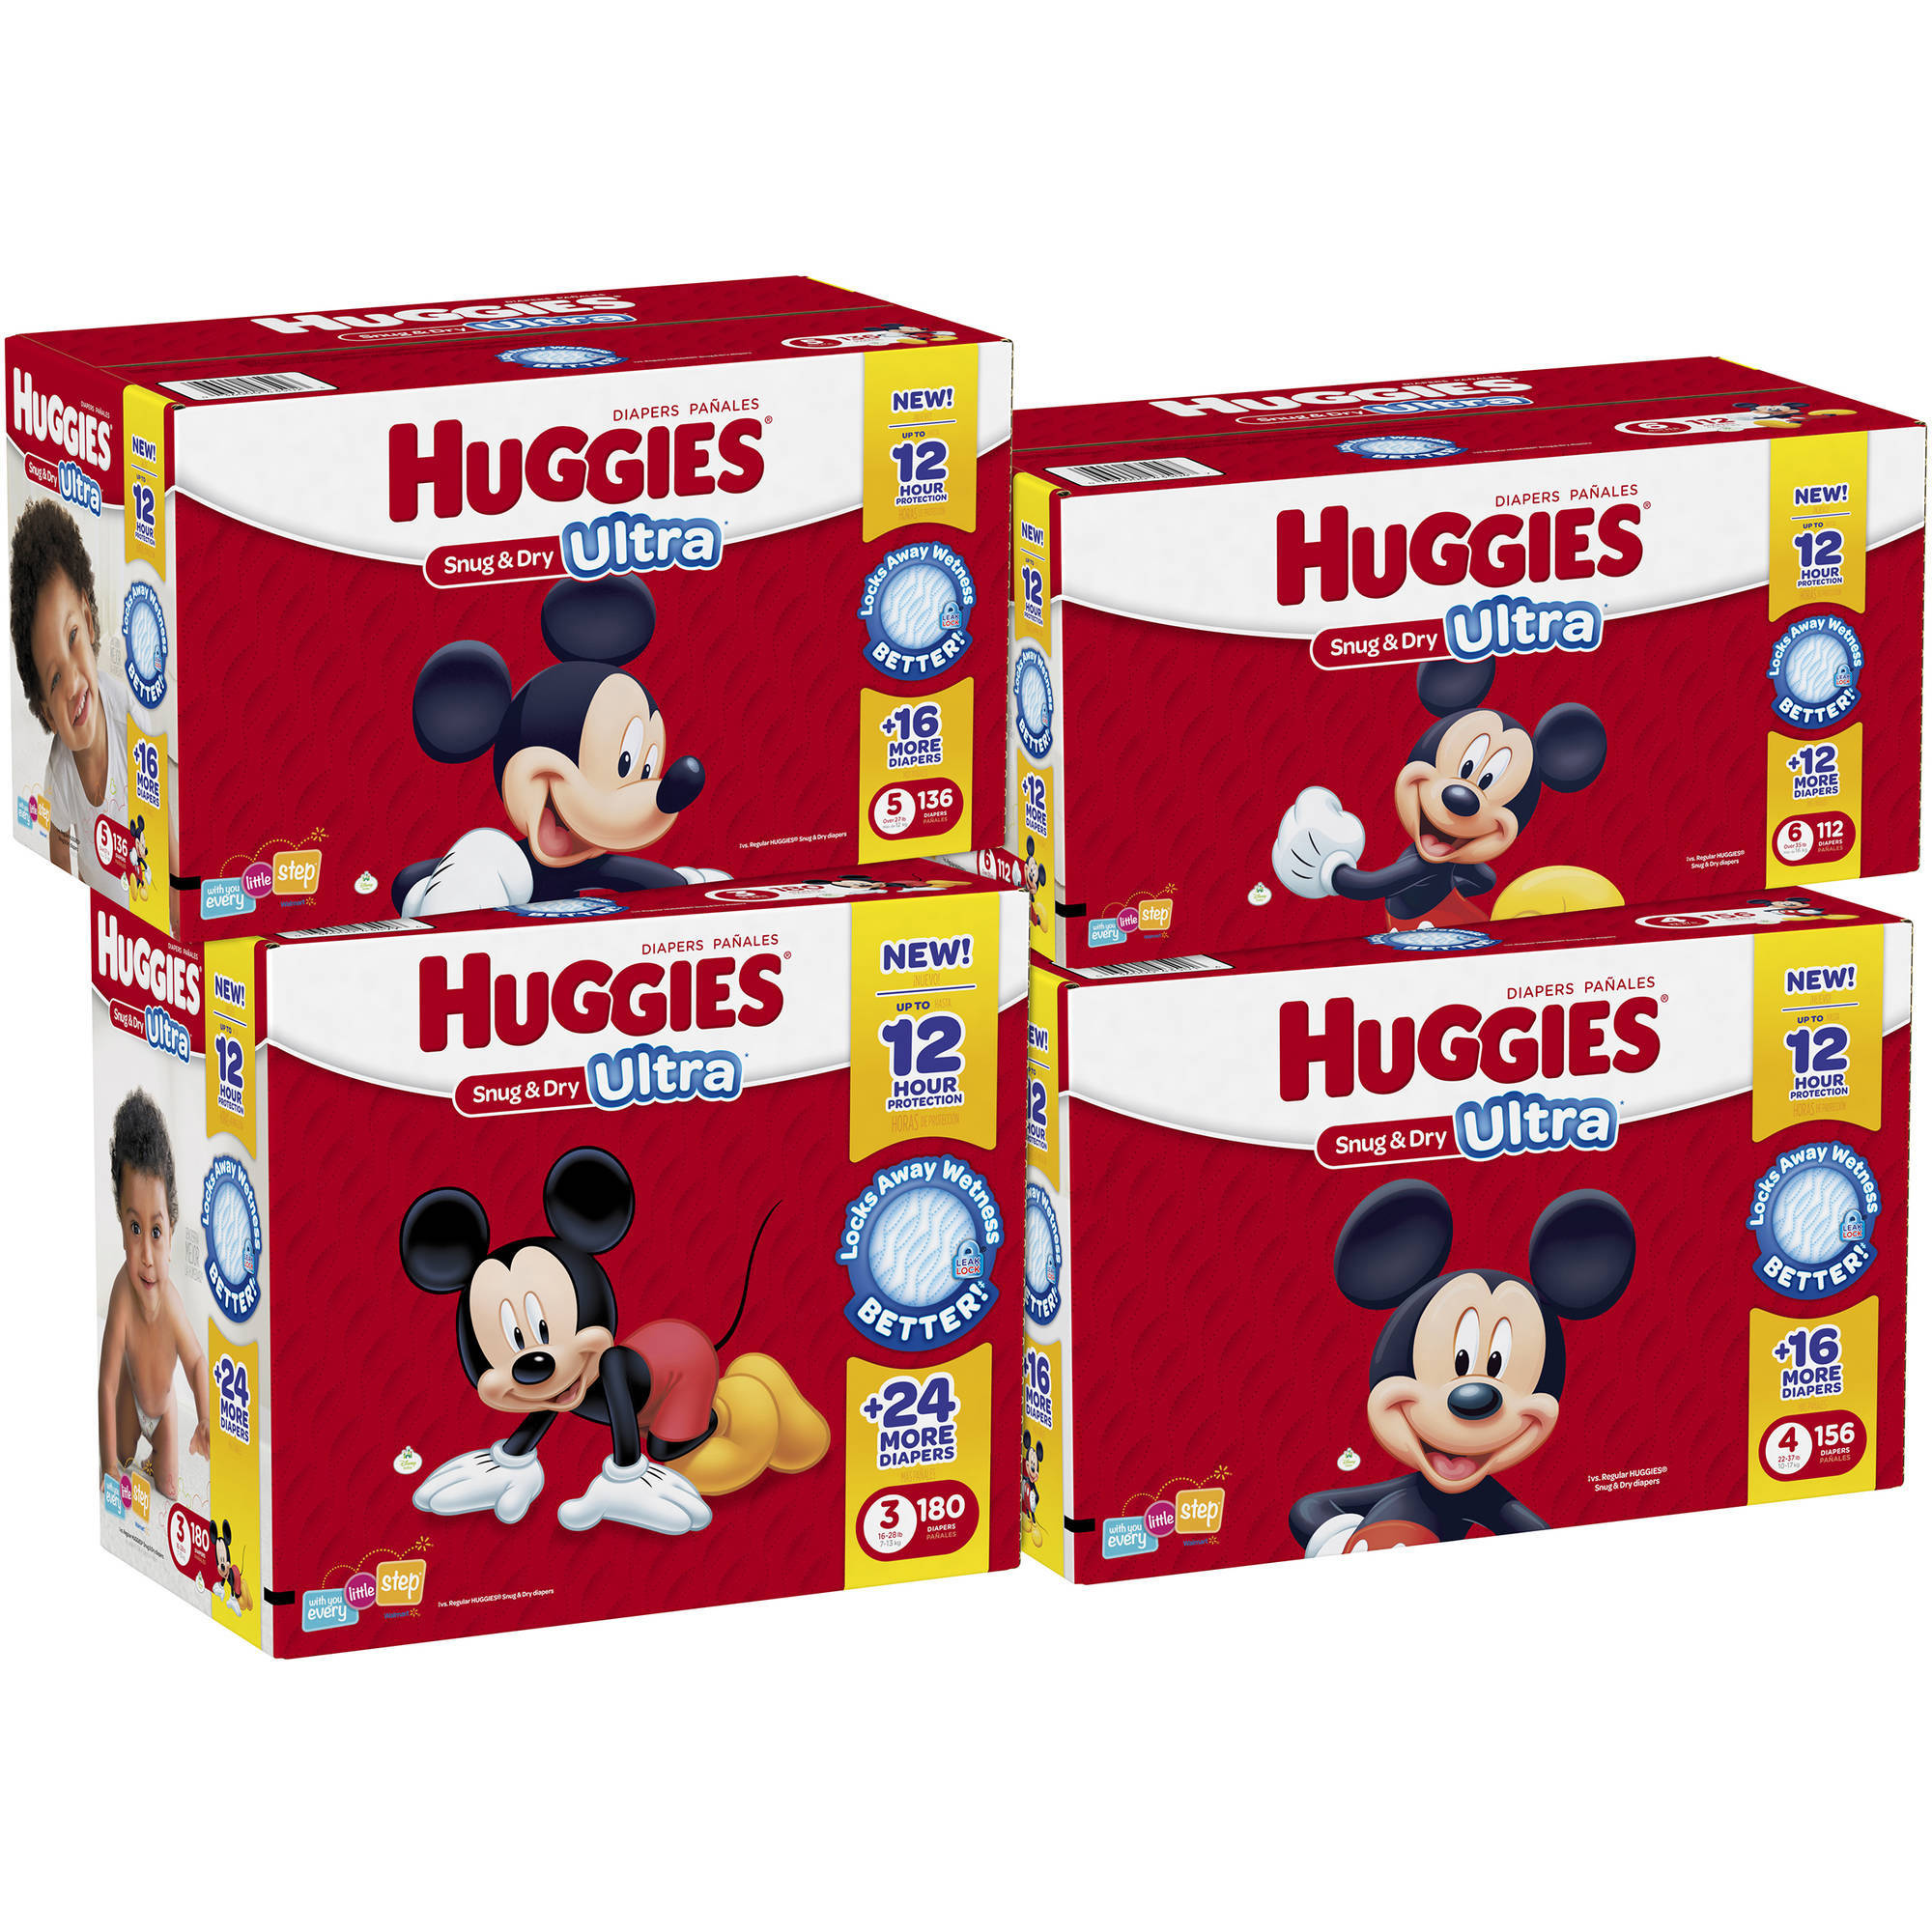 Huggies Snug & Dry Ultra Diapers, Giant Pack, Size 5, 136 ct